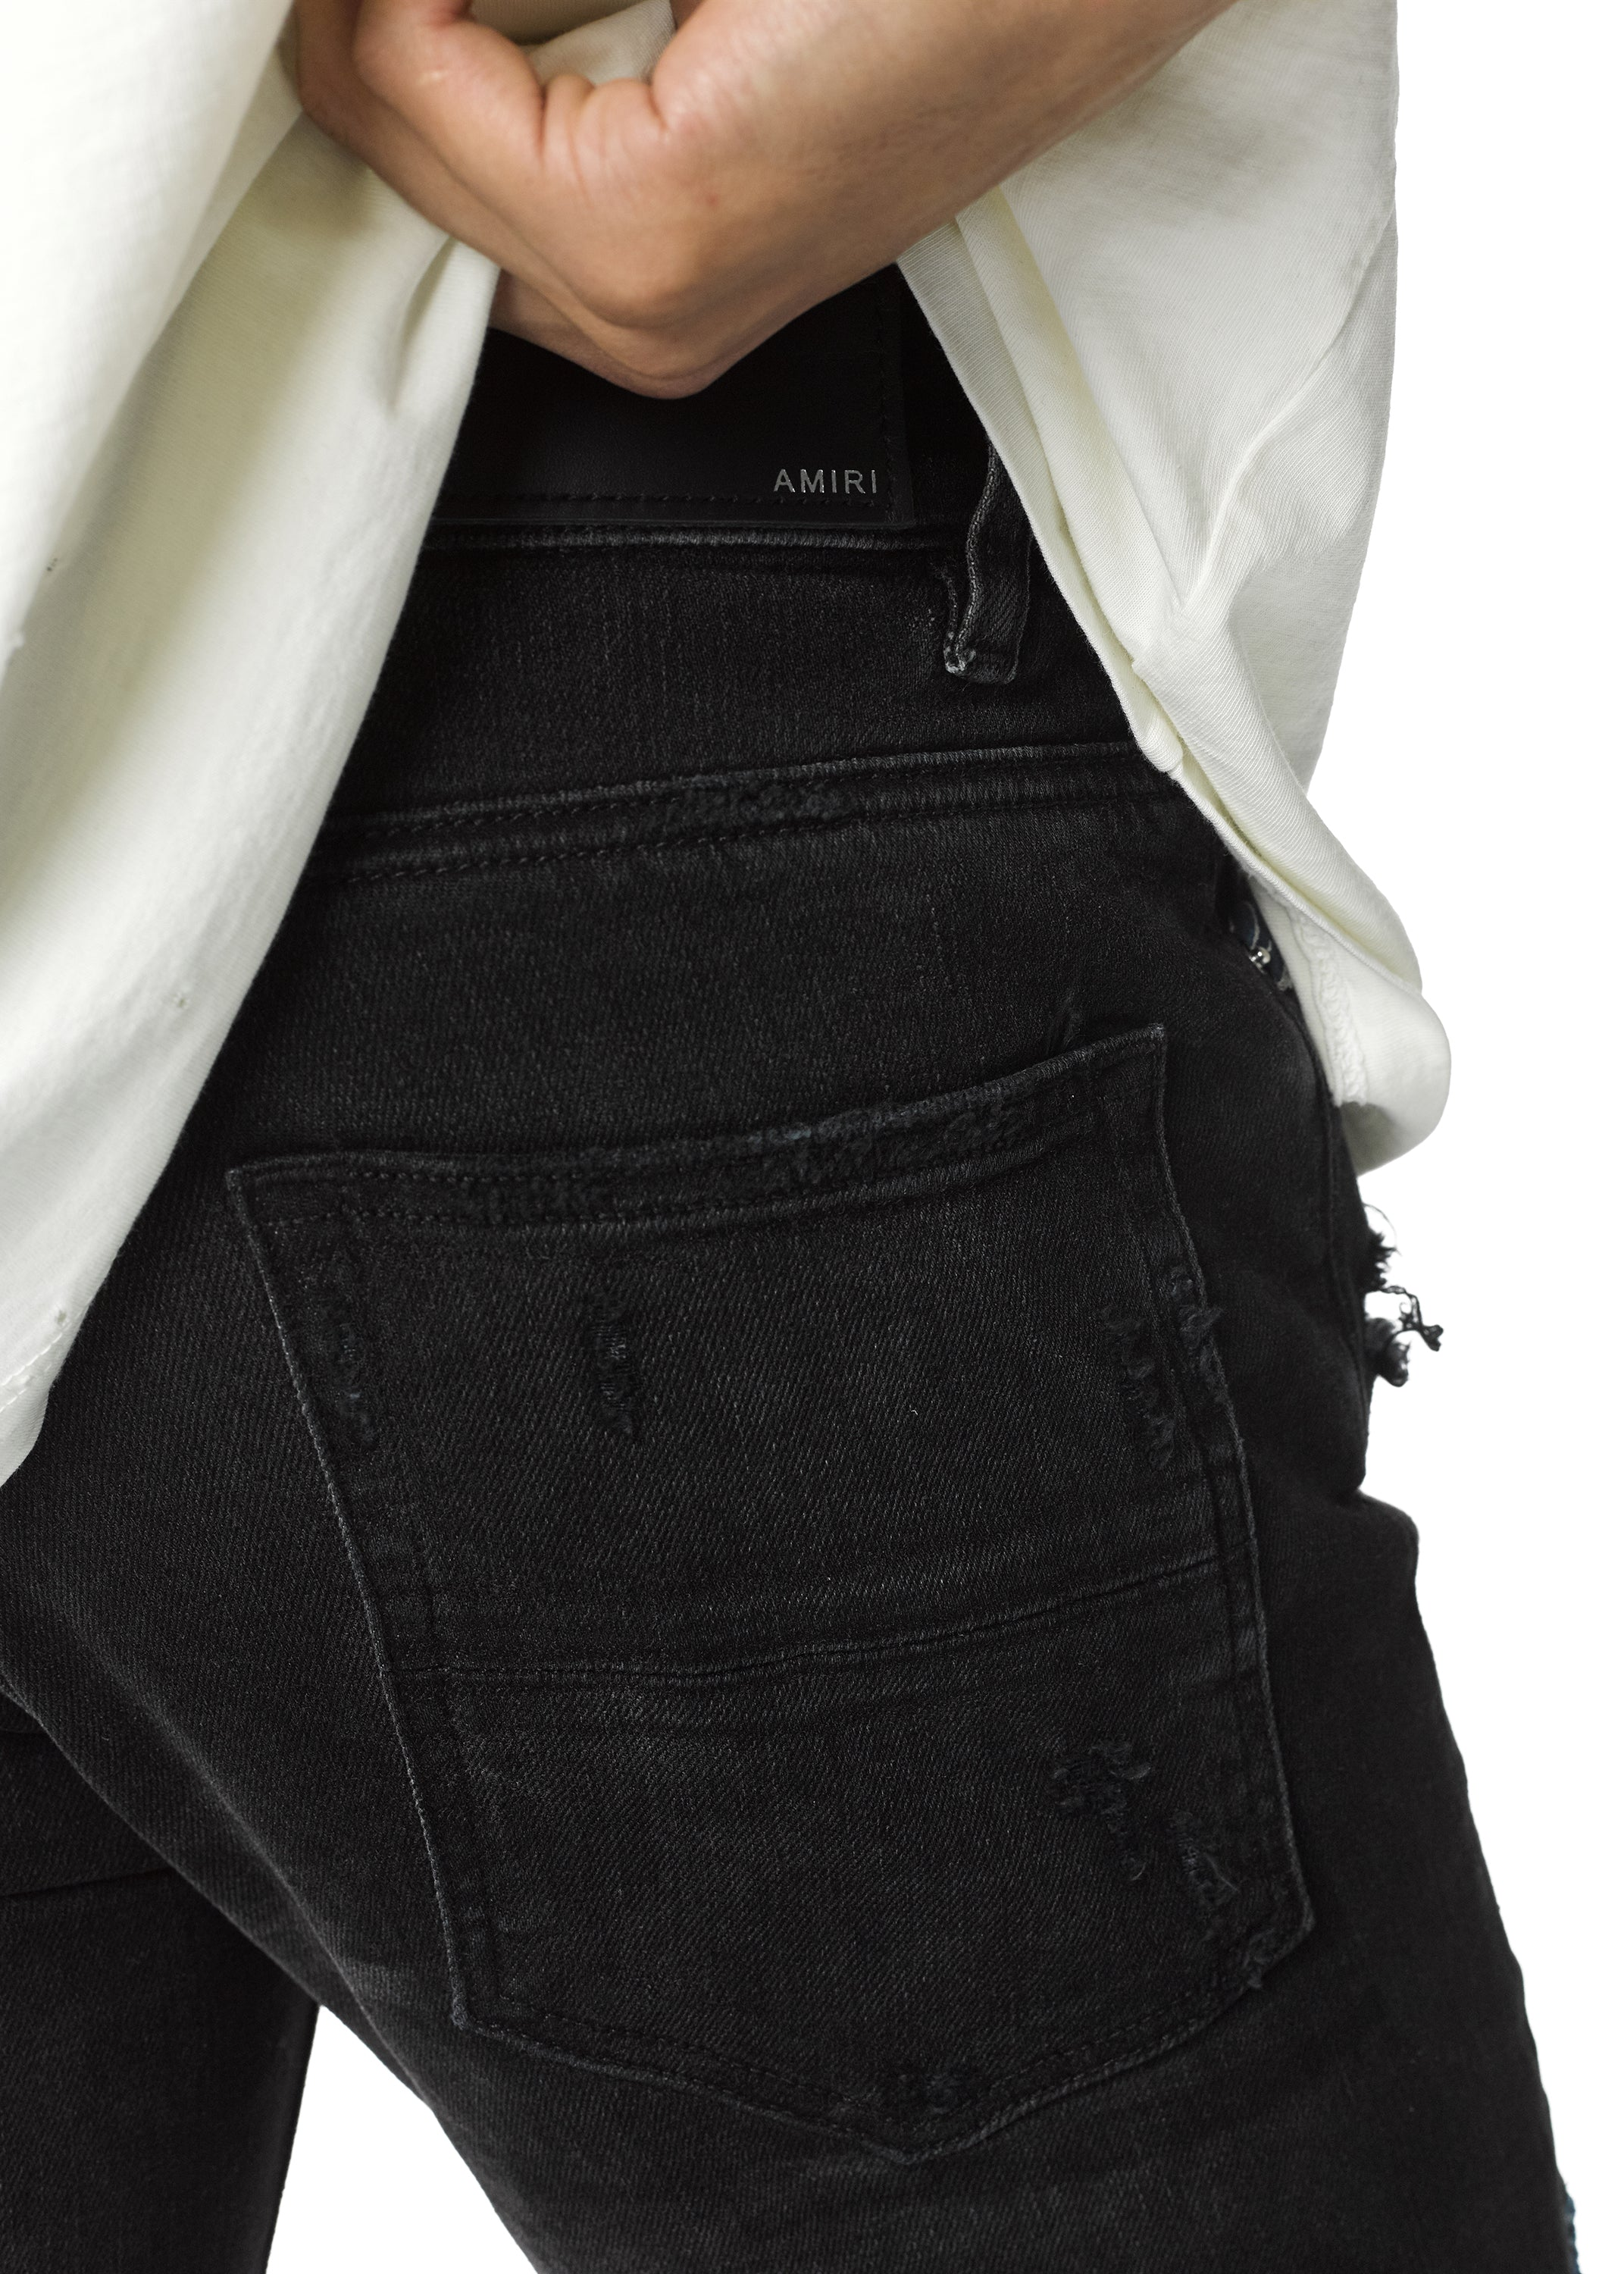 japanese-repair-jean-aged-black-image-7